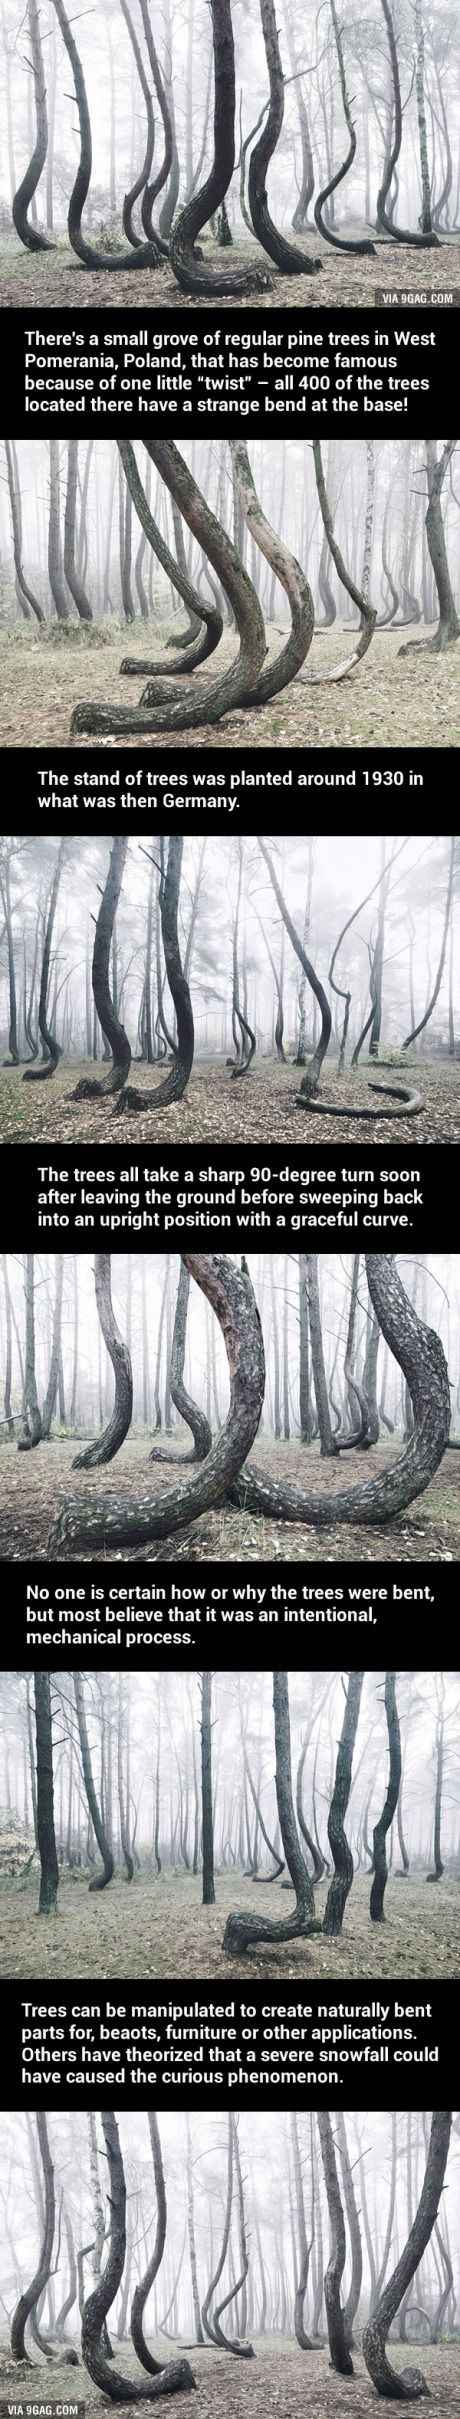 Mysterious Forest Of 400 Crooked Trees In Poland Is Still A Mystery For Scientists (Photos by Kilian Schönberger)